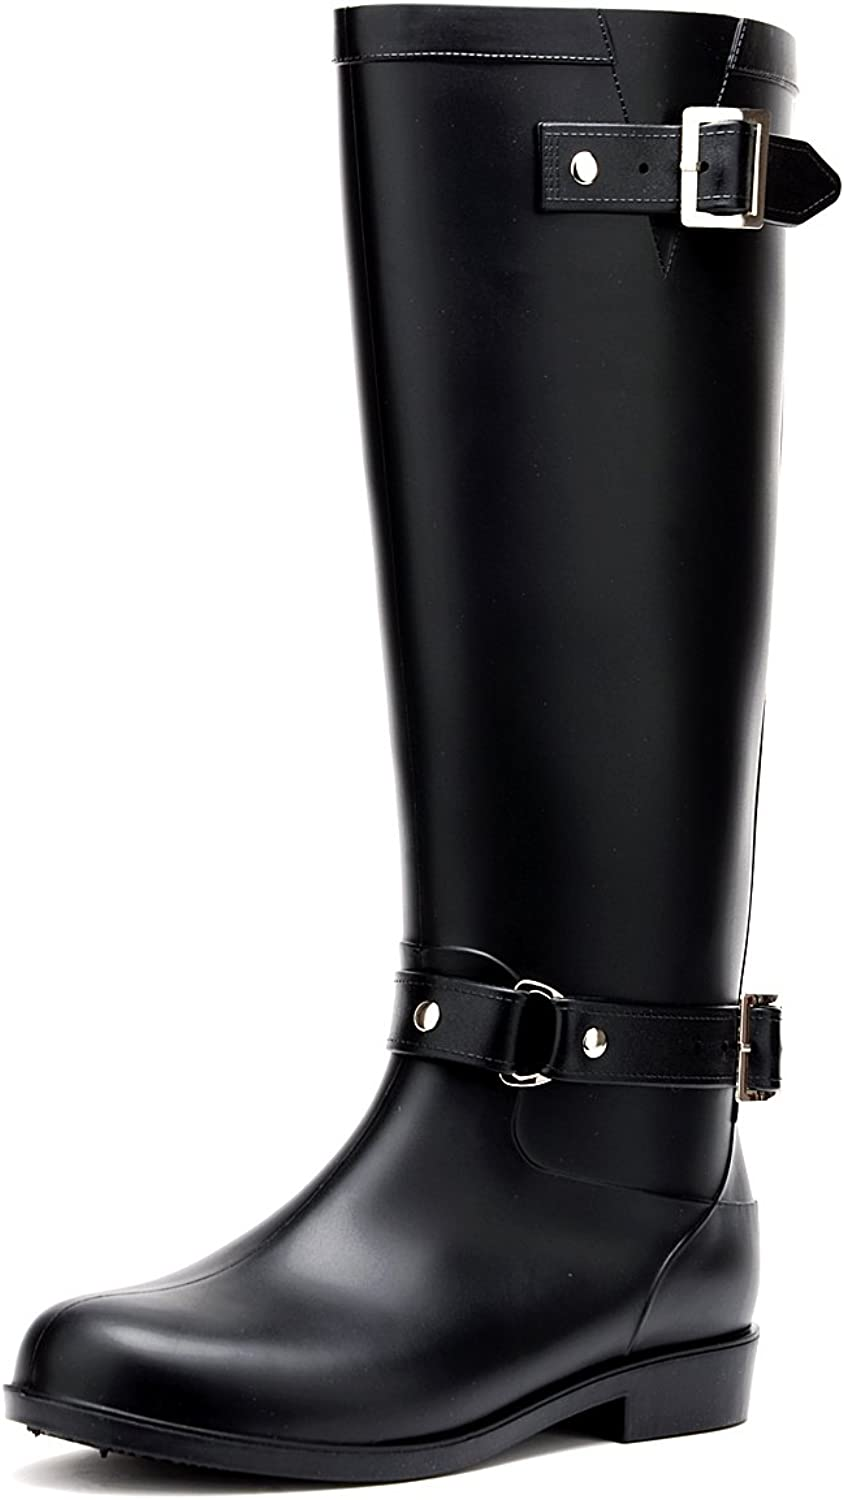 Odema Women's Waterproof Solid Tall shoes Knee High Zip Adjustable Rain Boot